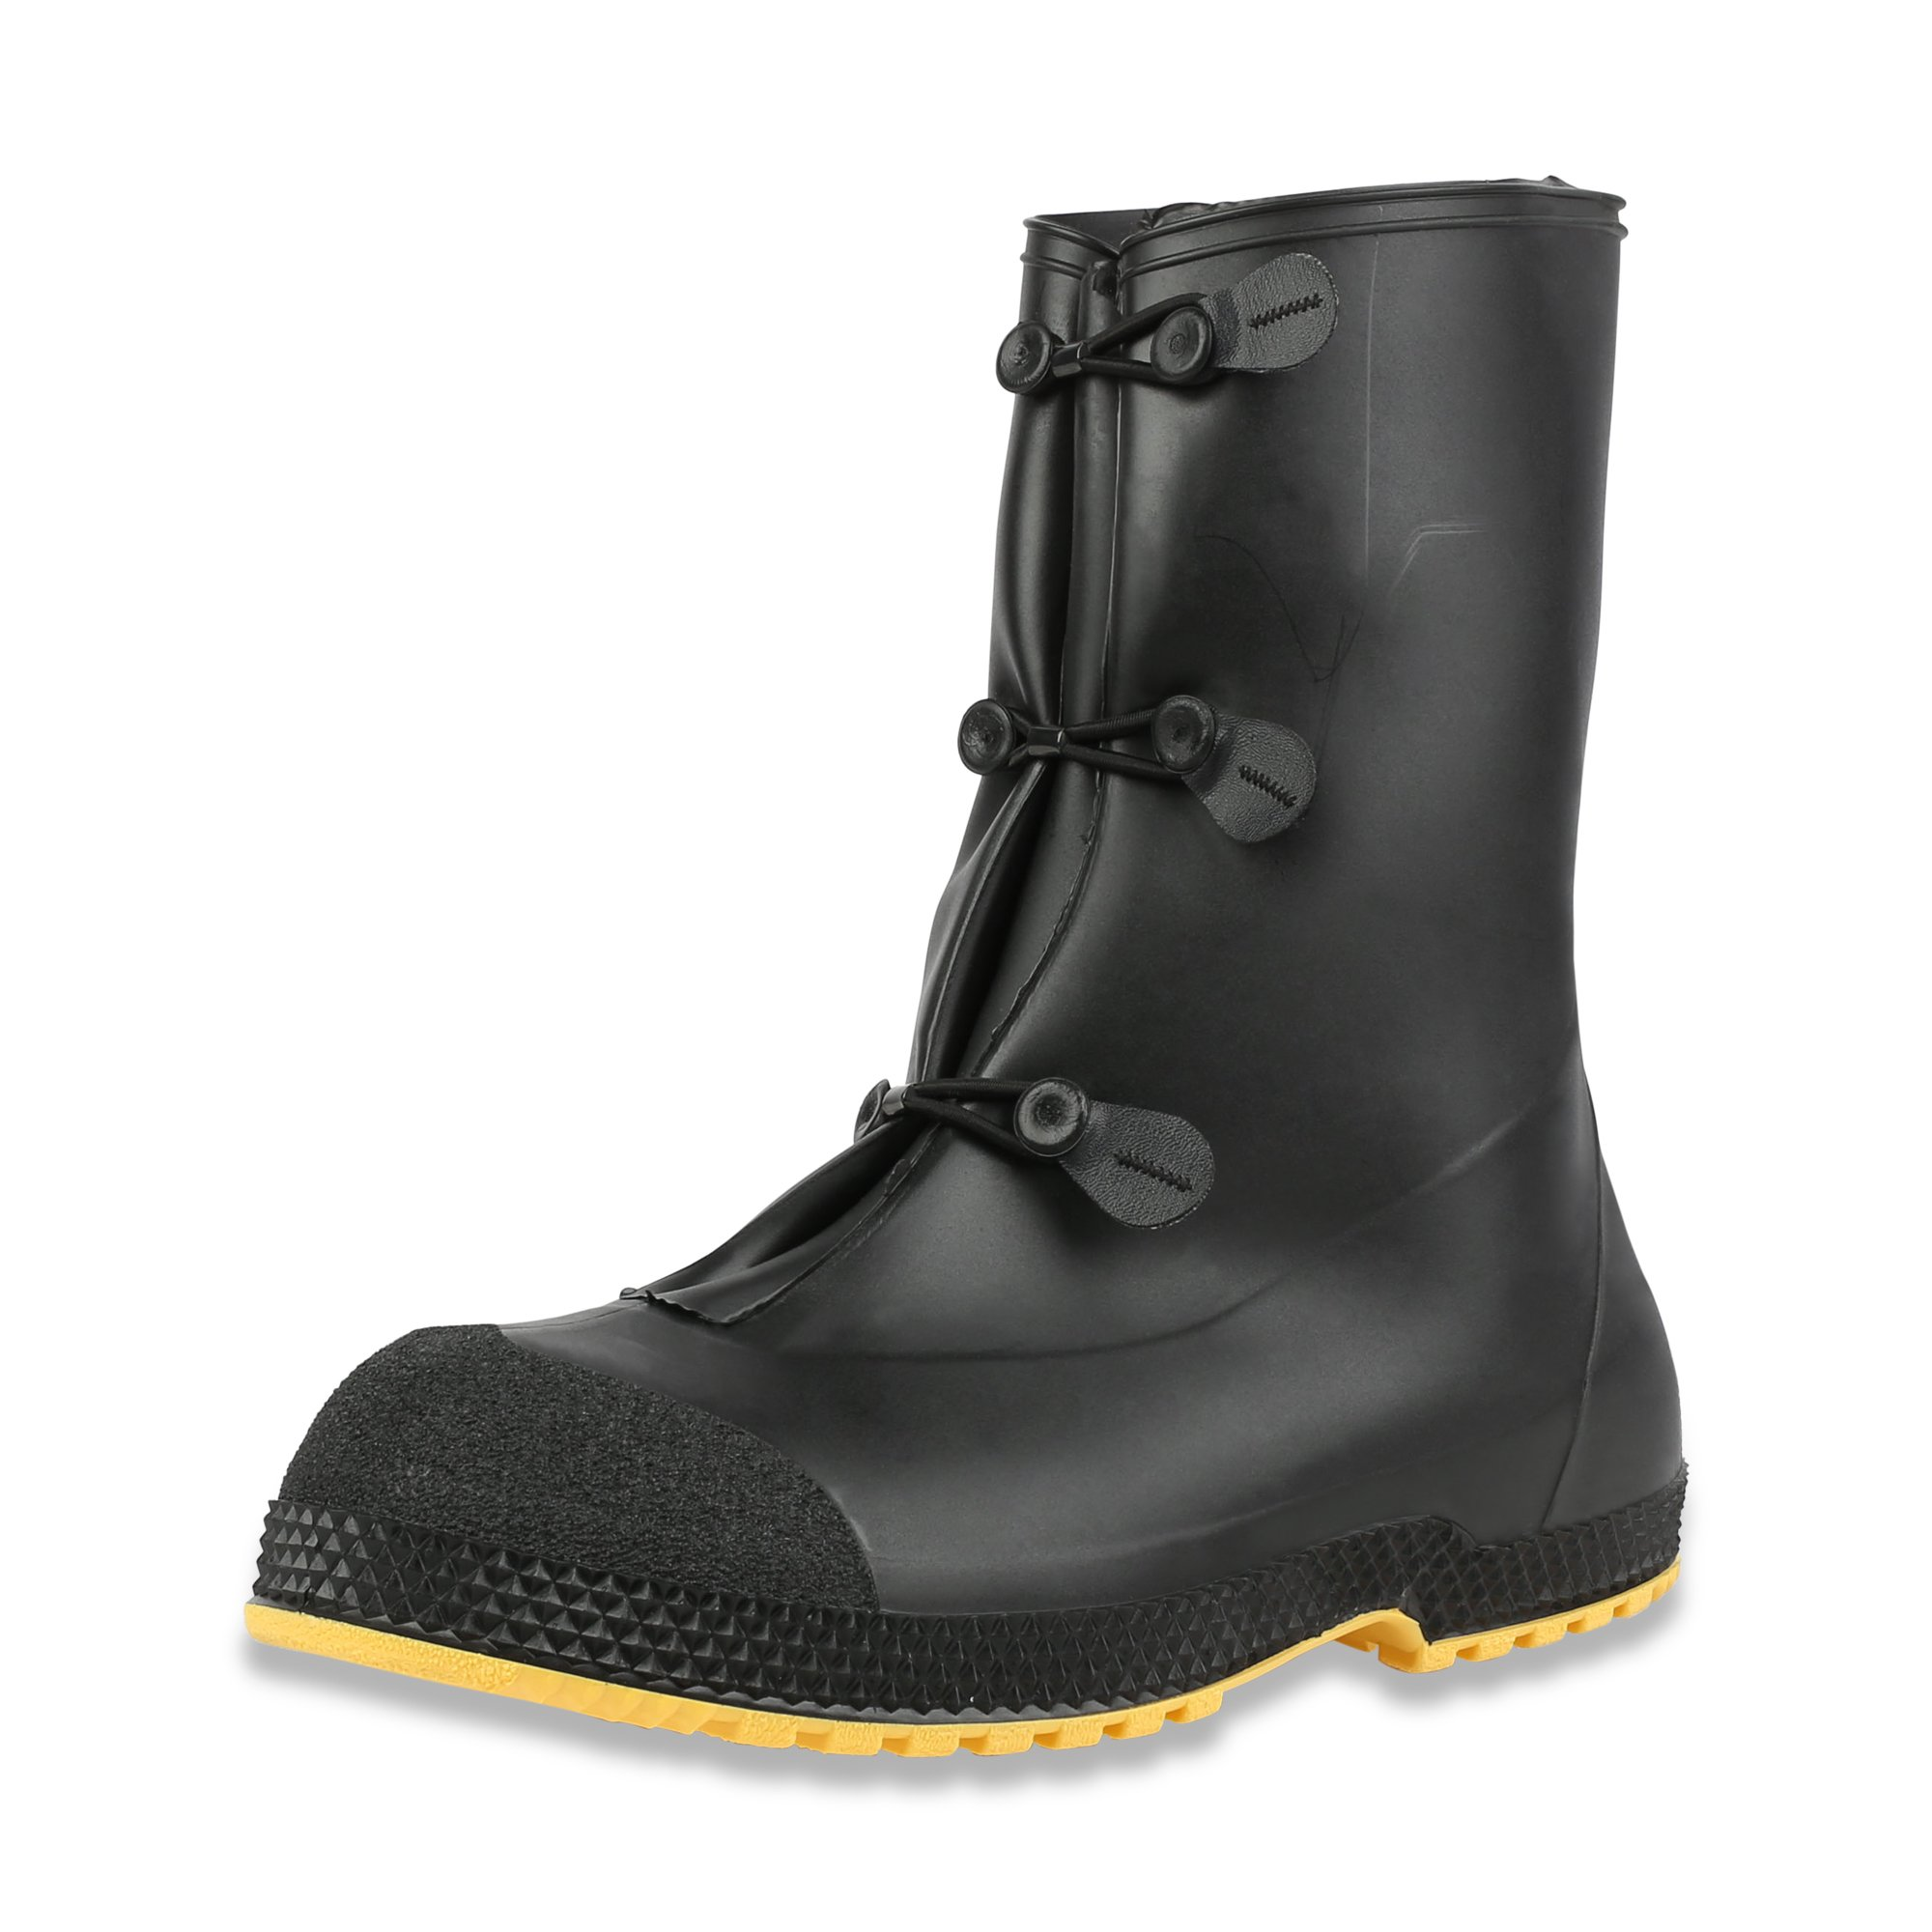 Servus SuperFit 12'' PVC Dual-Compound Men's Overboots, Black & Yellow (11002B-Boxed) by Servus